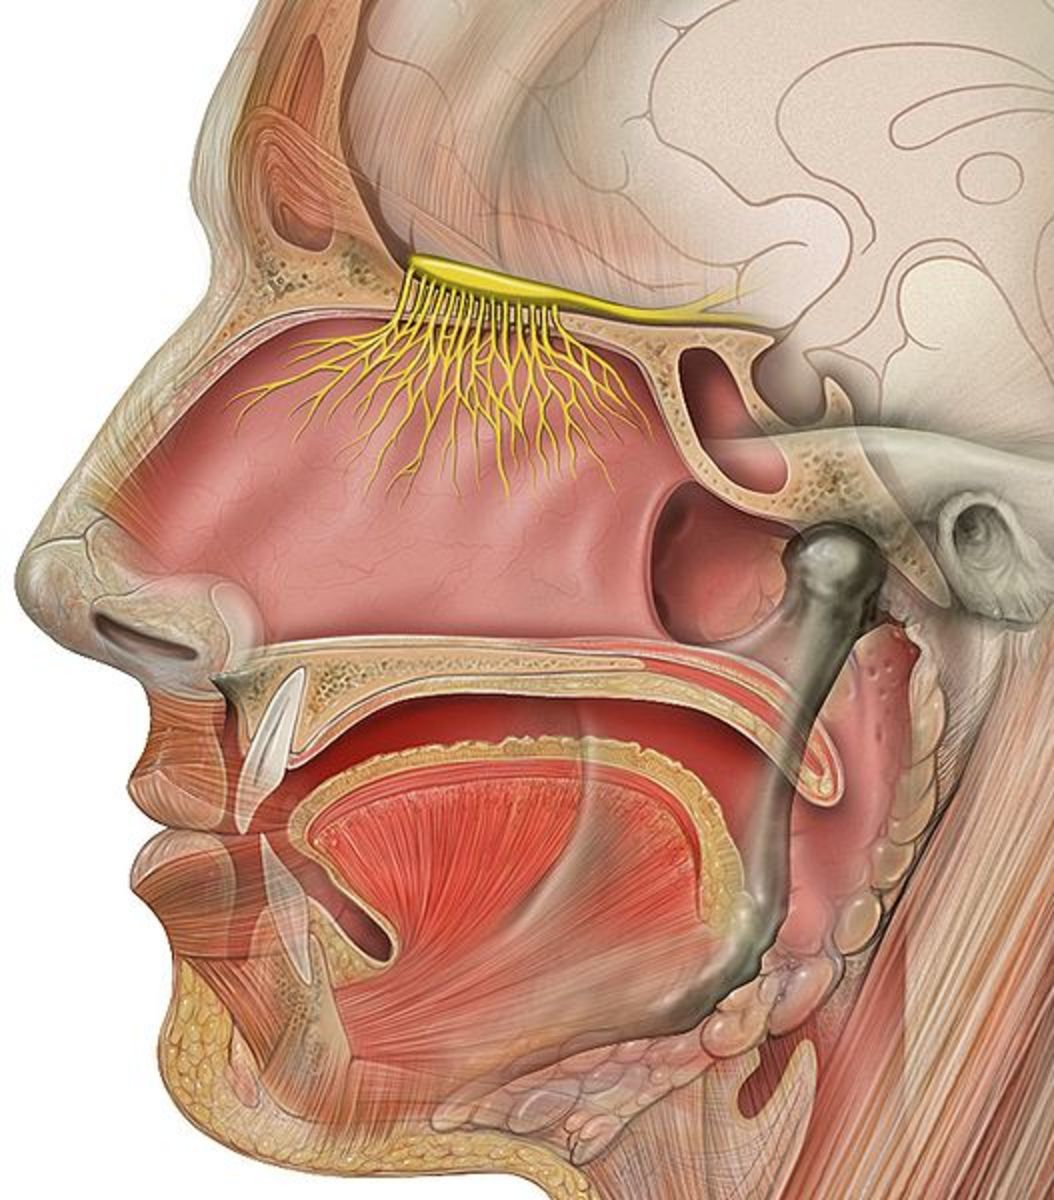 Head anatomy showing the olfactory nerves.